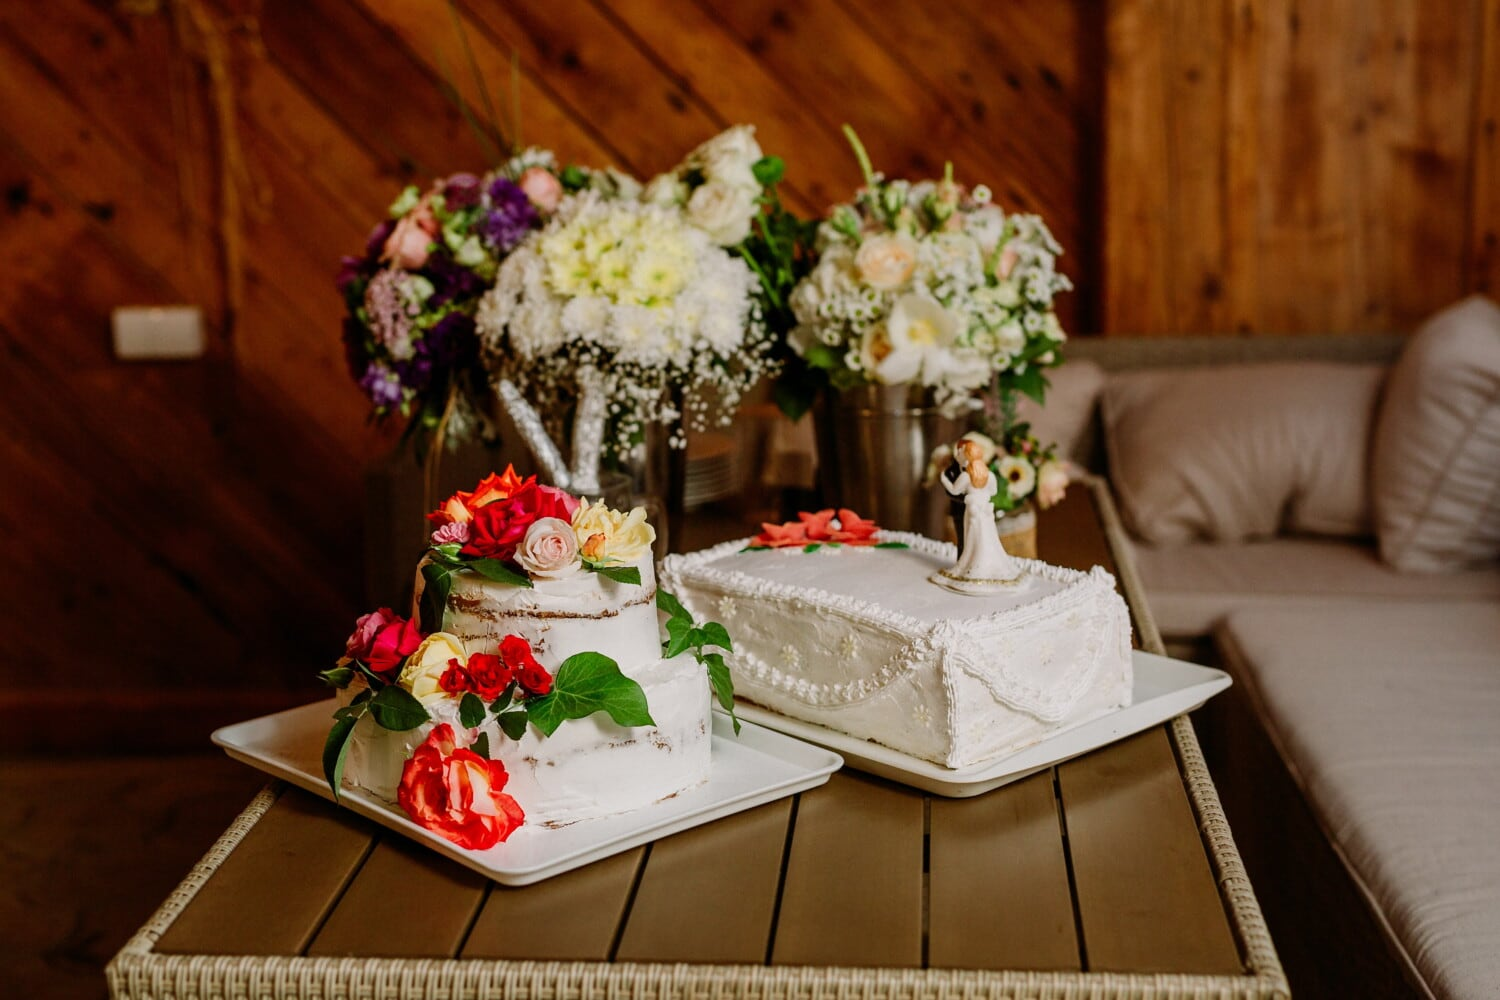 cakes, wedding cake, living room, table, sofa, bouquet, arrangement, flowers, decoration, flower